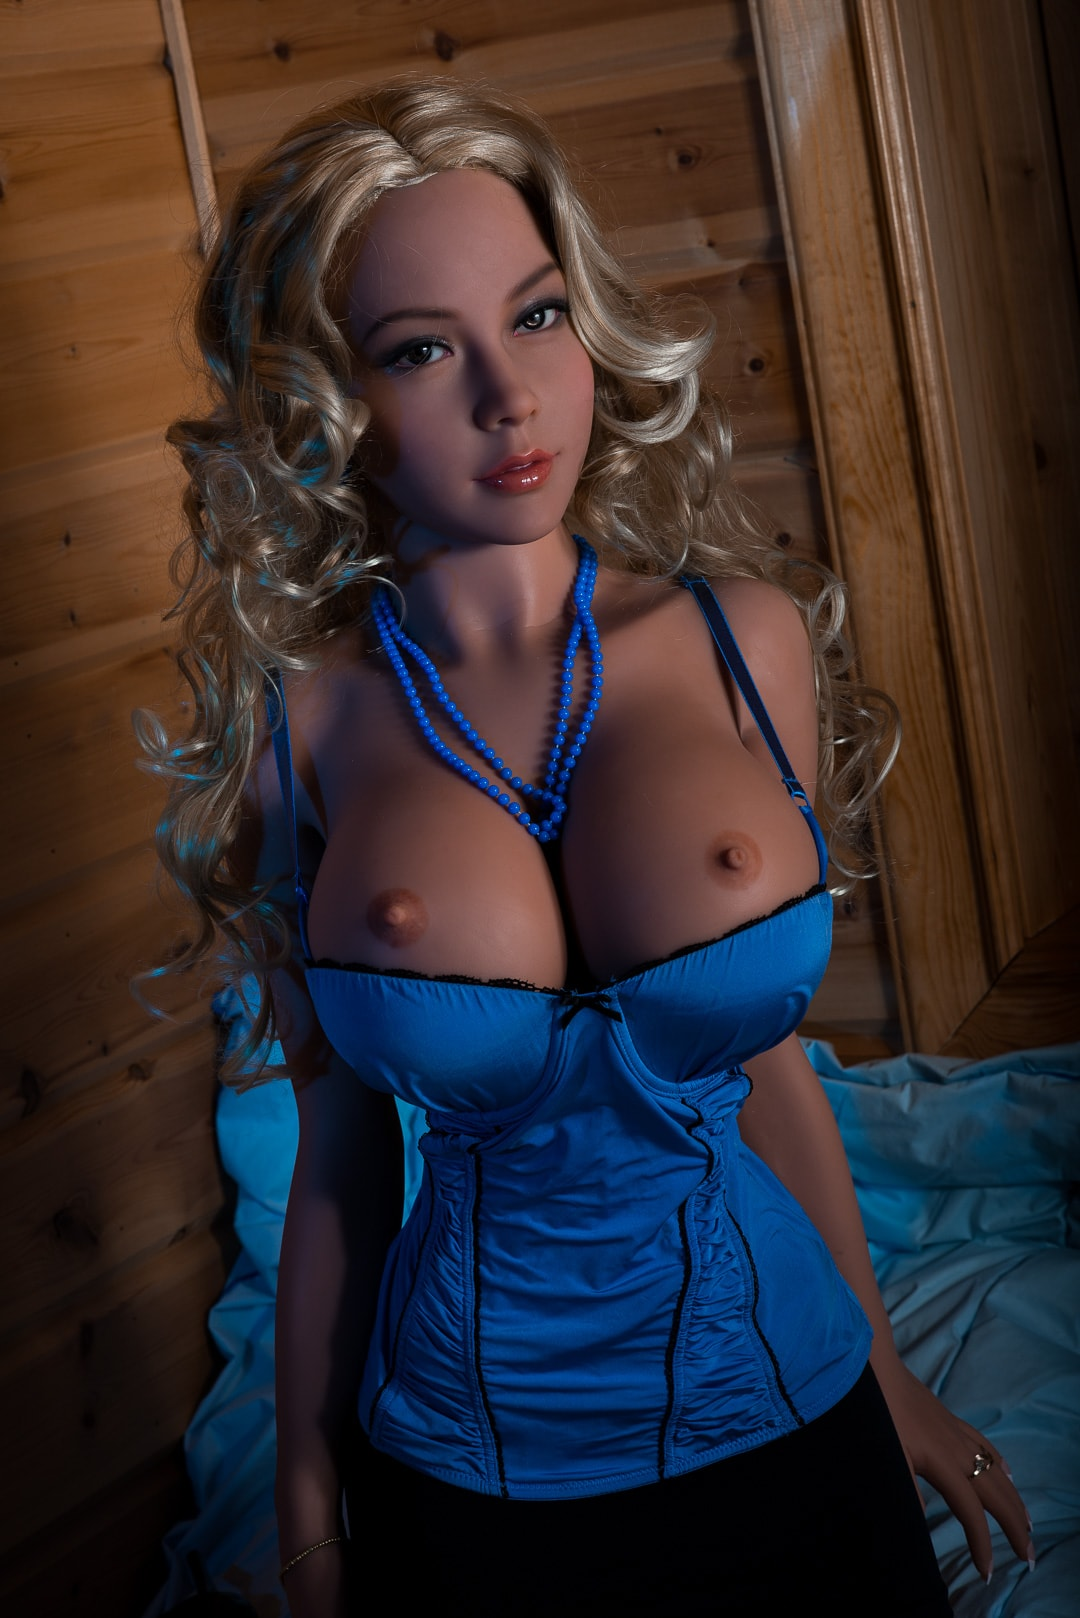 michaela 155cm blonde big boobs athletic tan skin tpe wm sex doll(2)